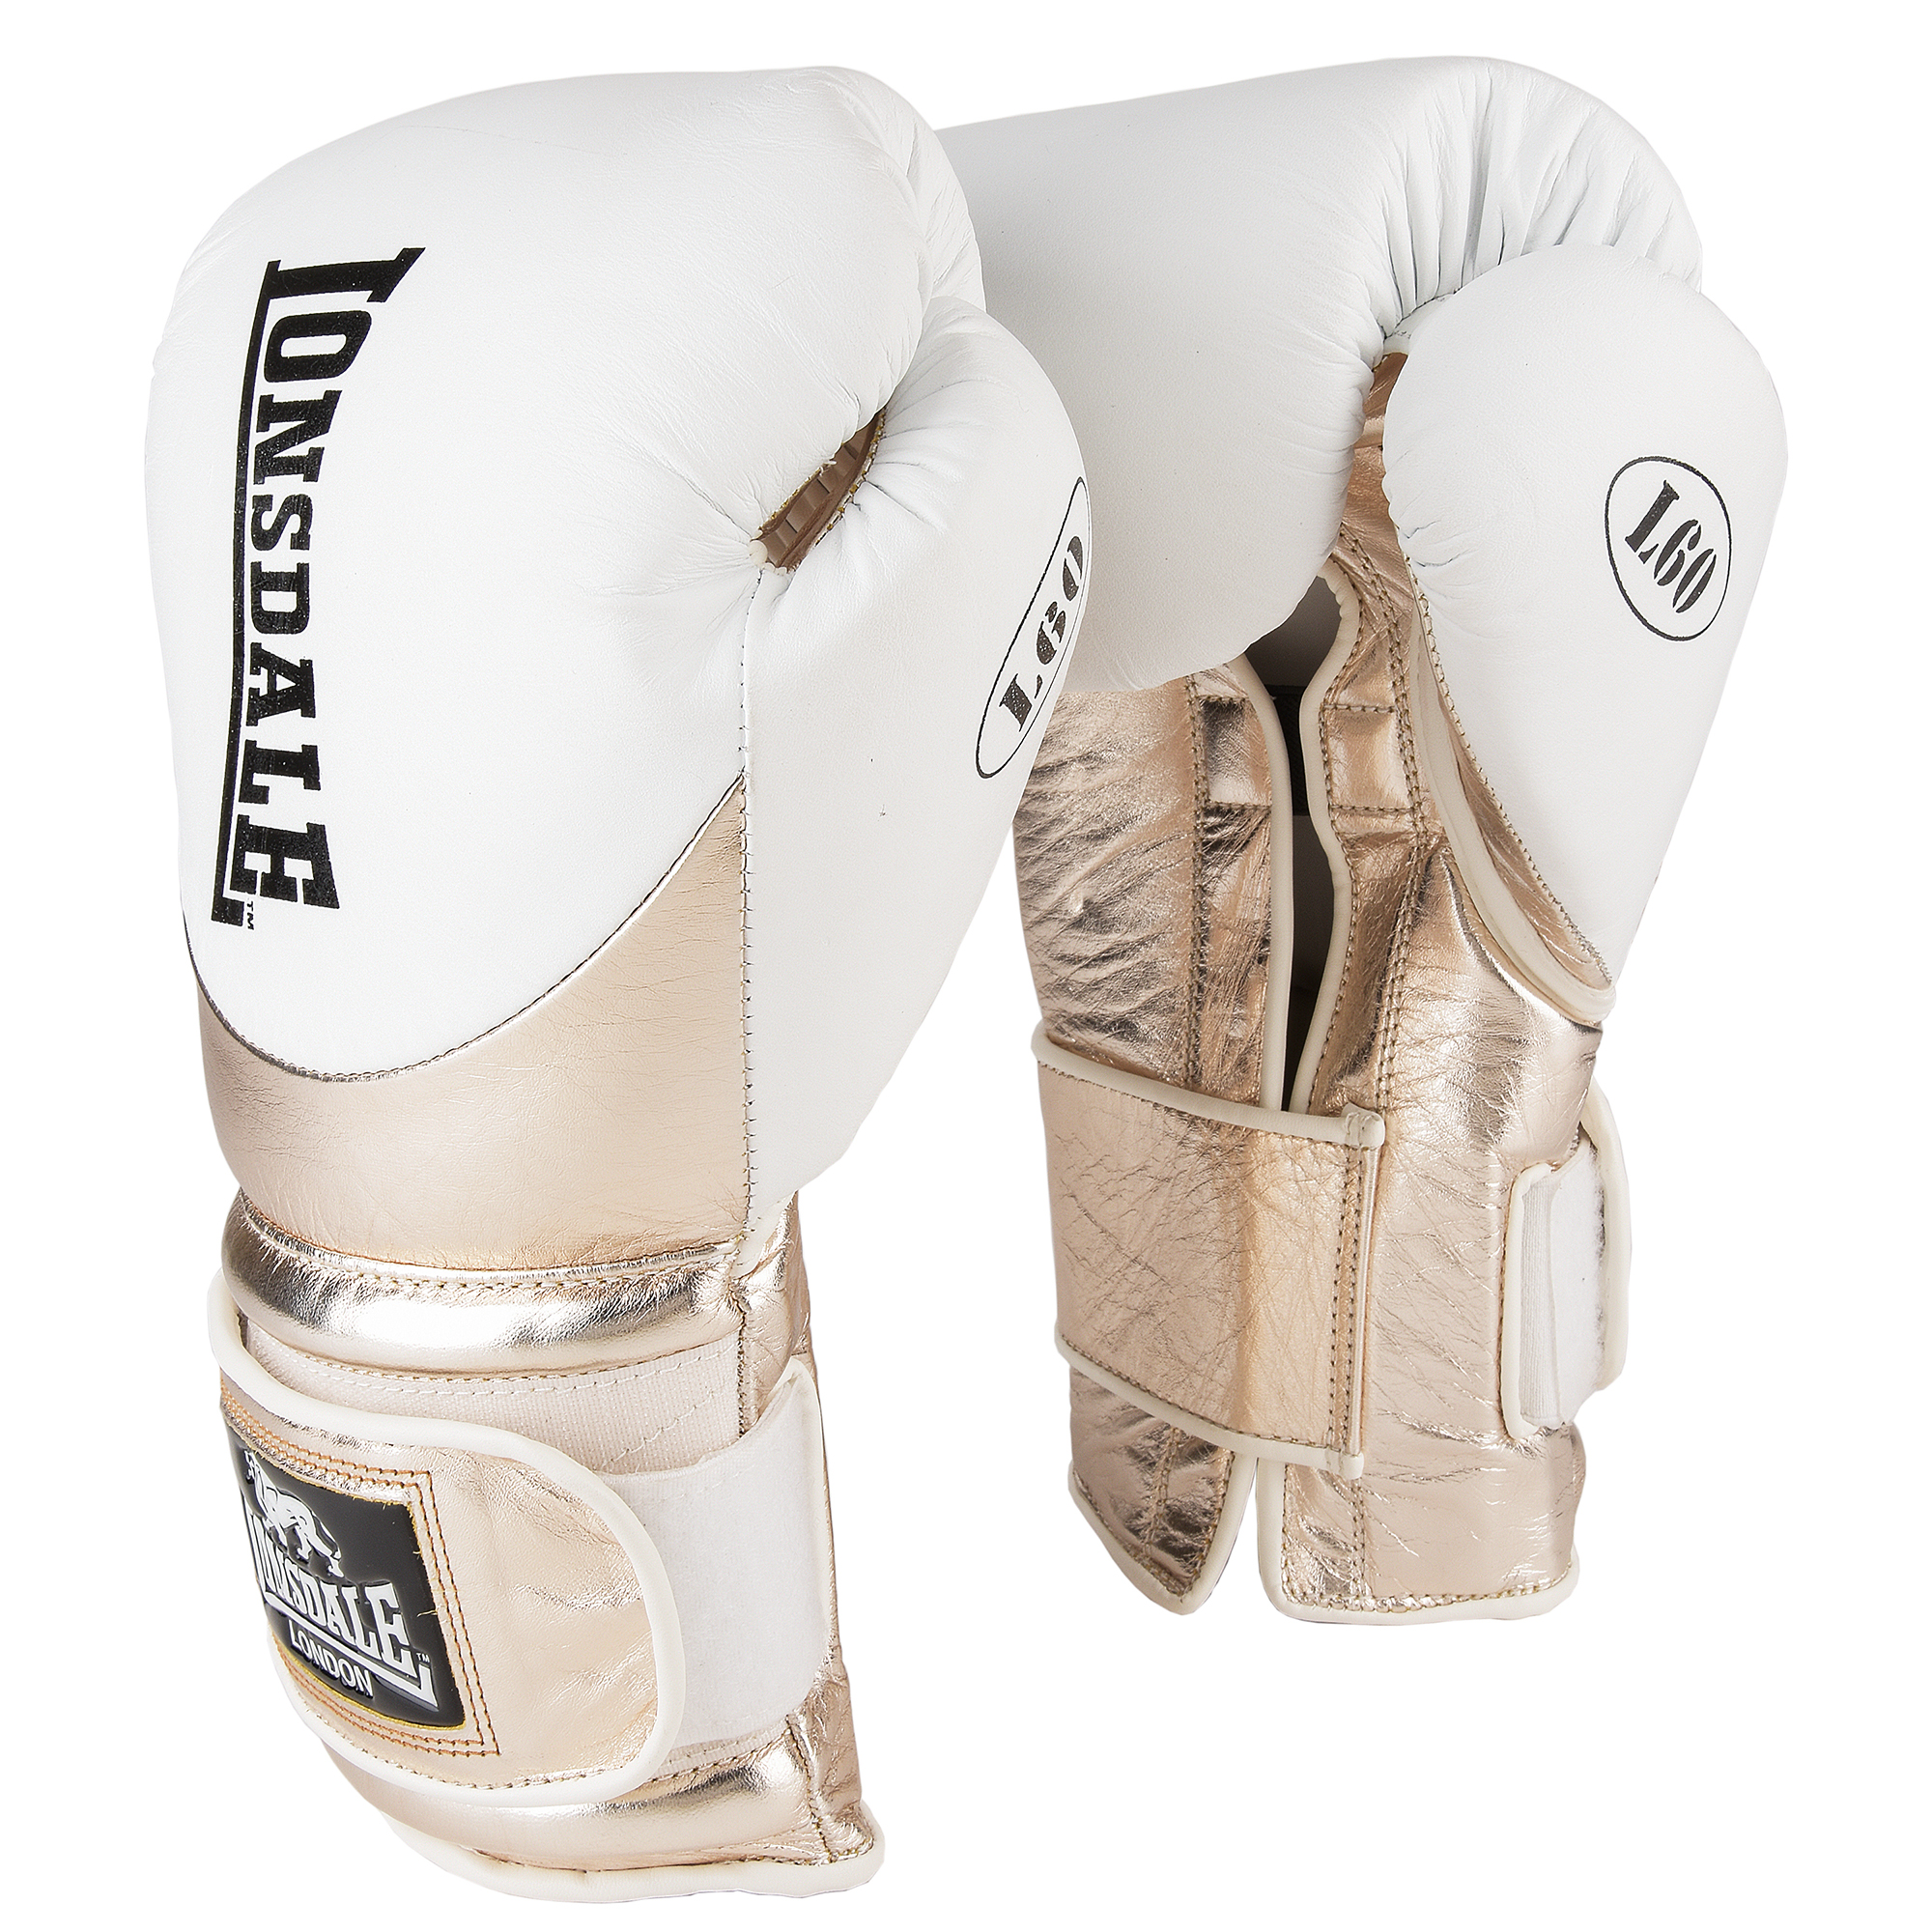 Lonsdale L60 Hook and Loop Leather Training Gloves - White/Gold, 16oz